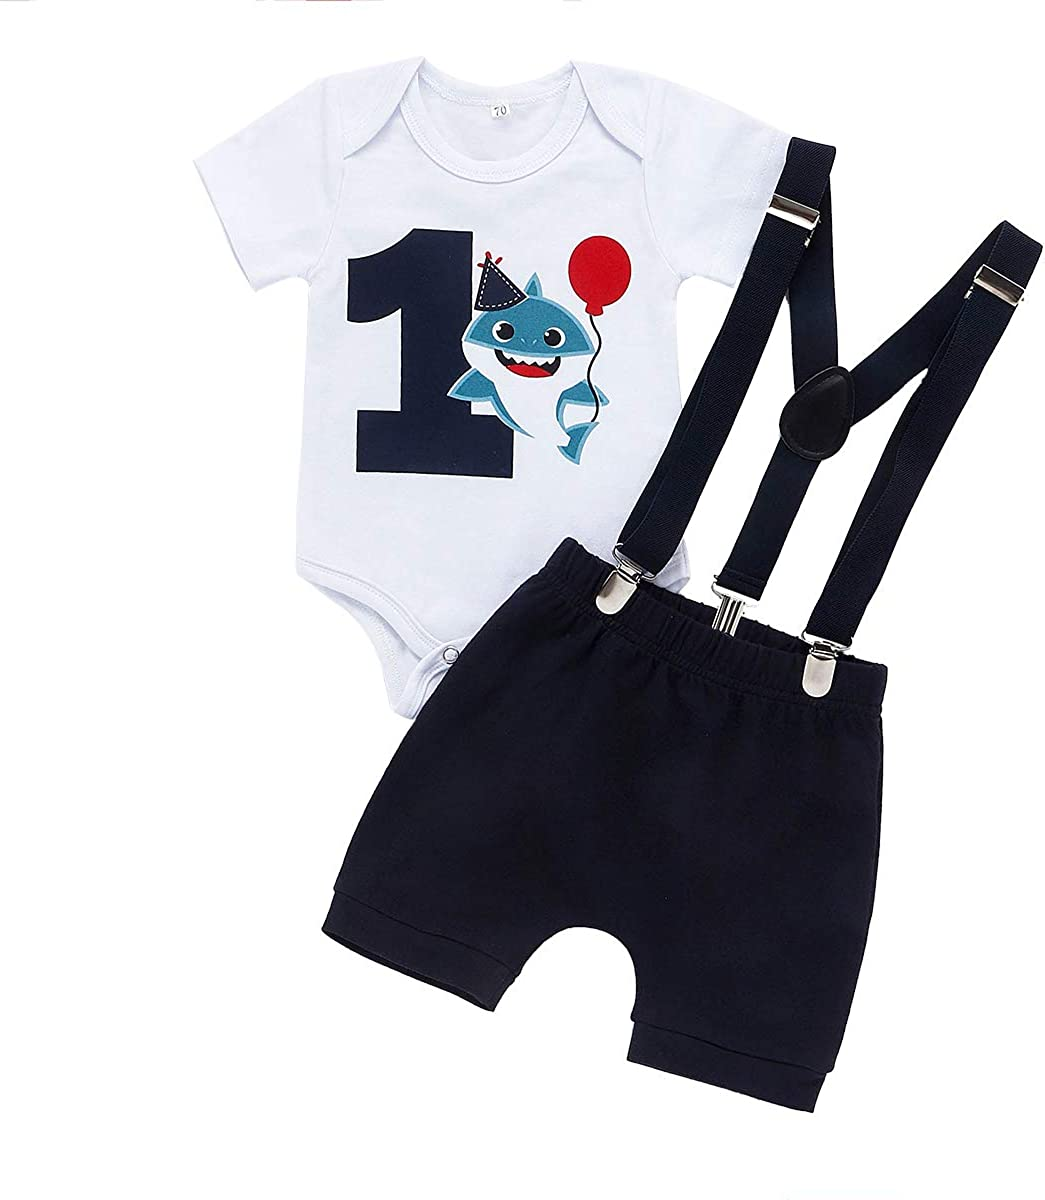 Baby Shark Summer Clothes Toddler Boy Shark Shorts Set Kids Summer Outfits Clothes Set